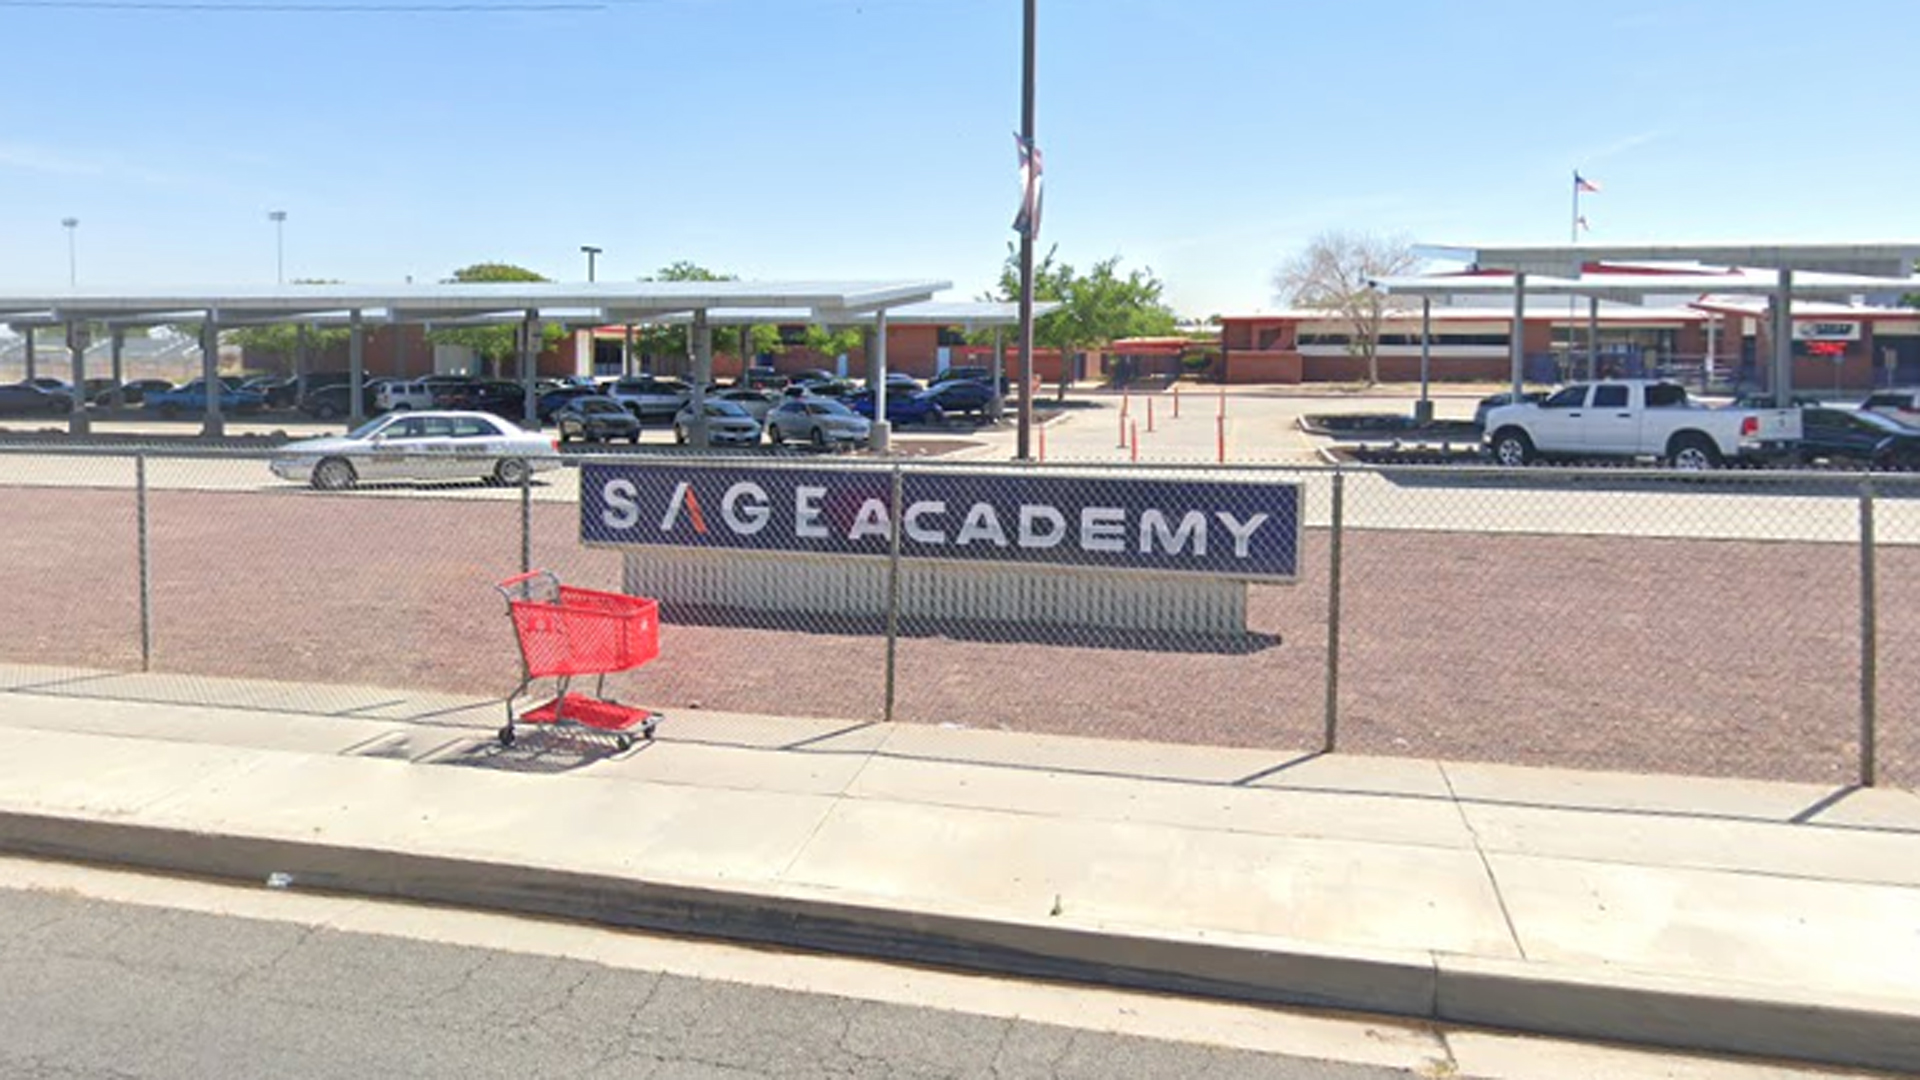 SAGE Academy is seen in a Google Maps image.